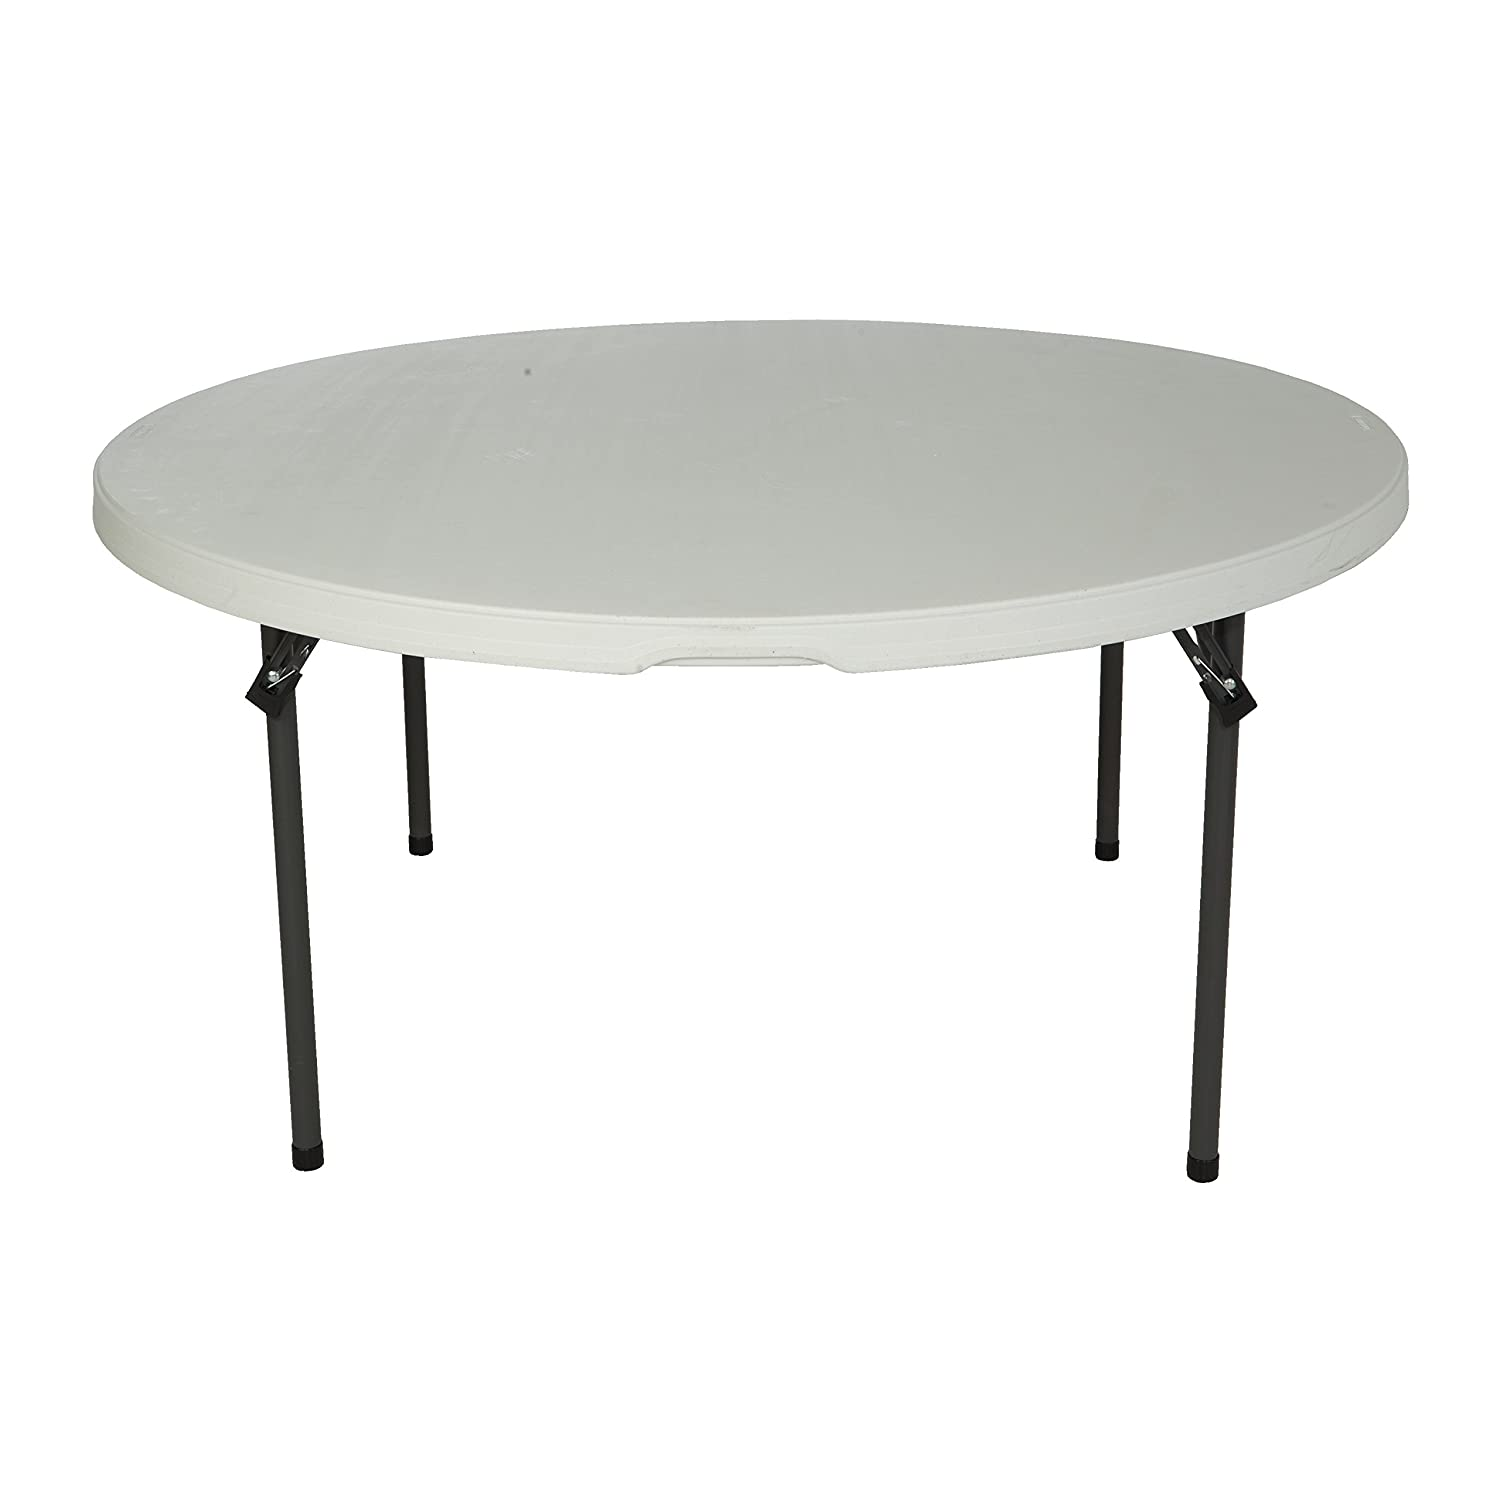 Amazon.com: Lifetime 280435 Commercial Round Folding Table, 5 Feet, Almond:  Kitchen U0026 Dining